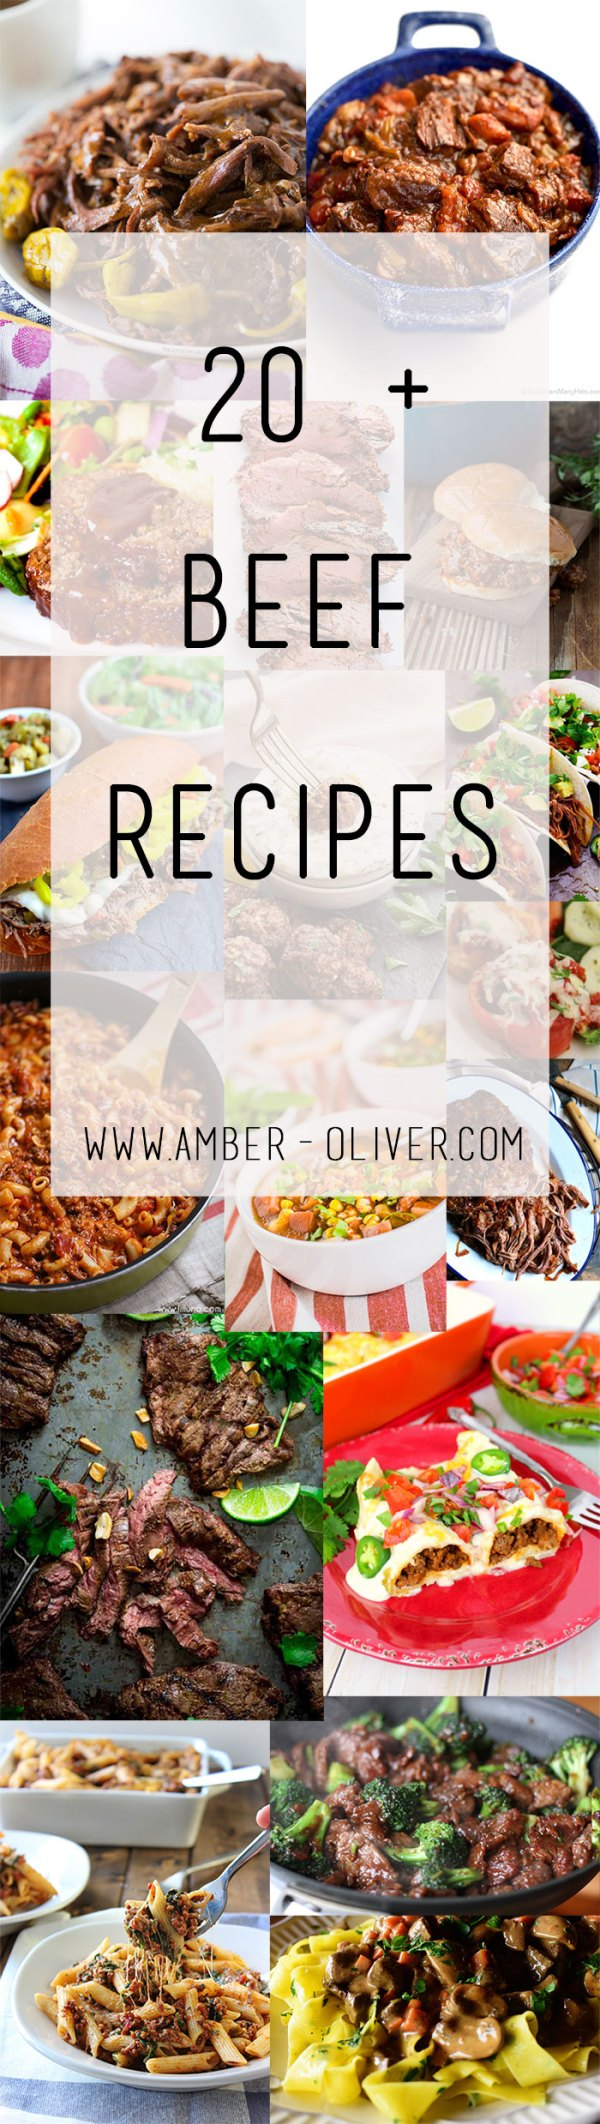 Beef Recipes Round Up